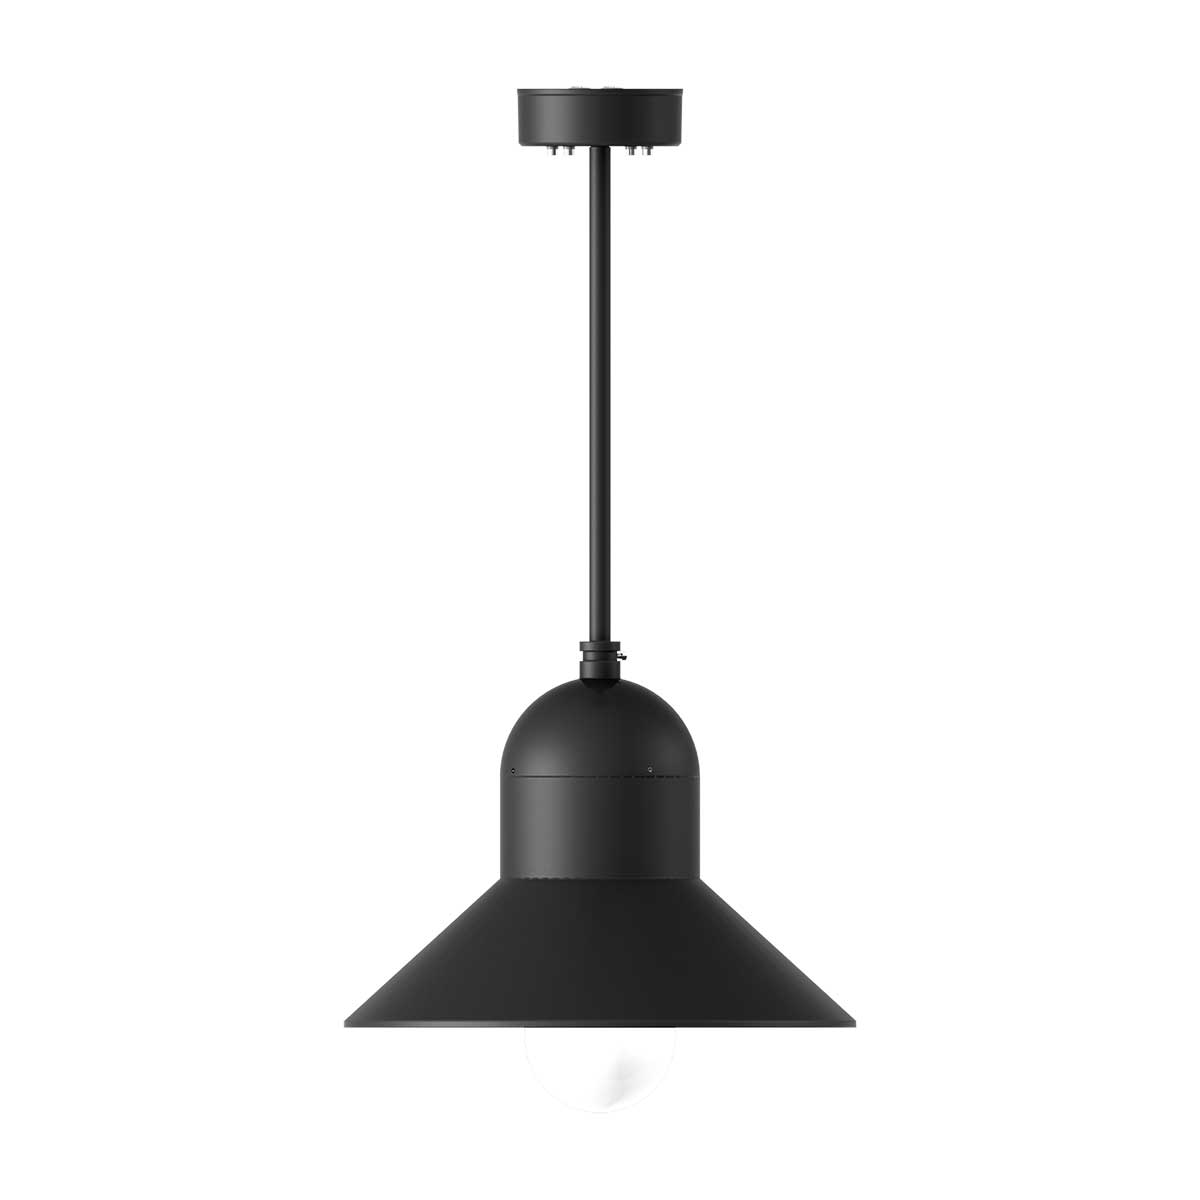 Atlantic nedium shade pendant prod 1200x1200